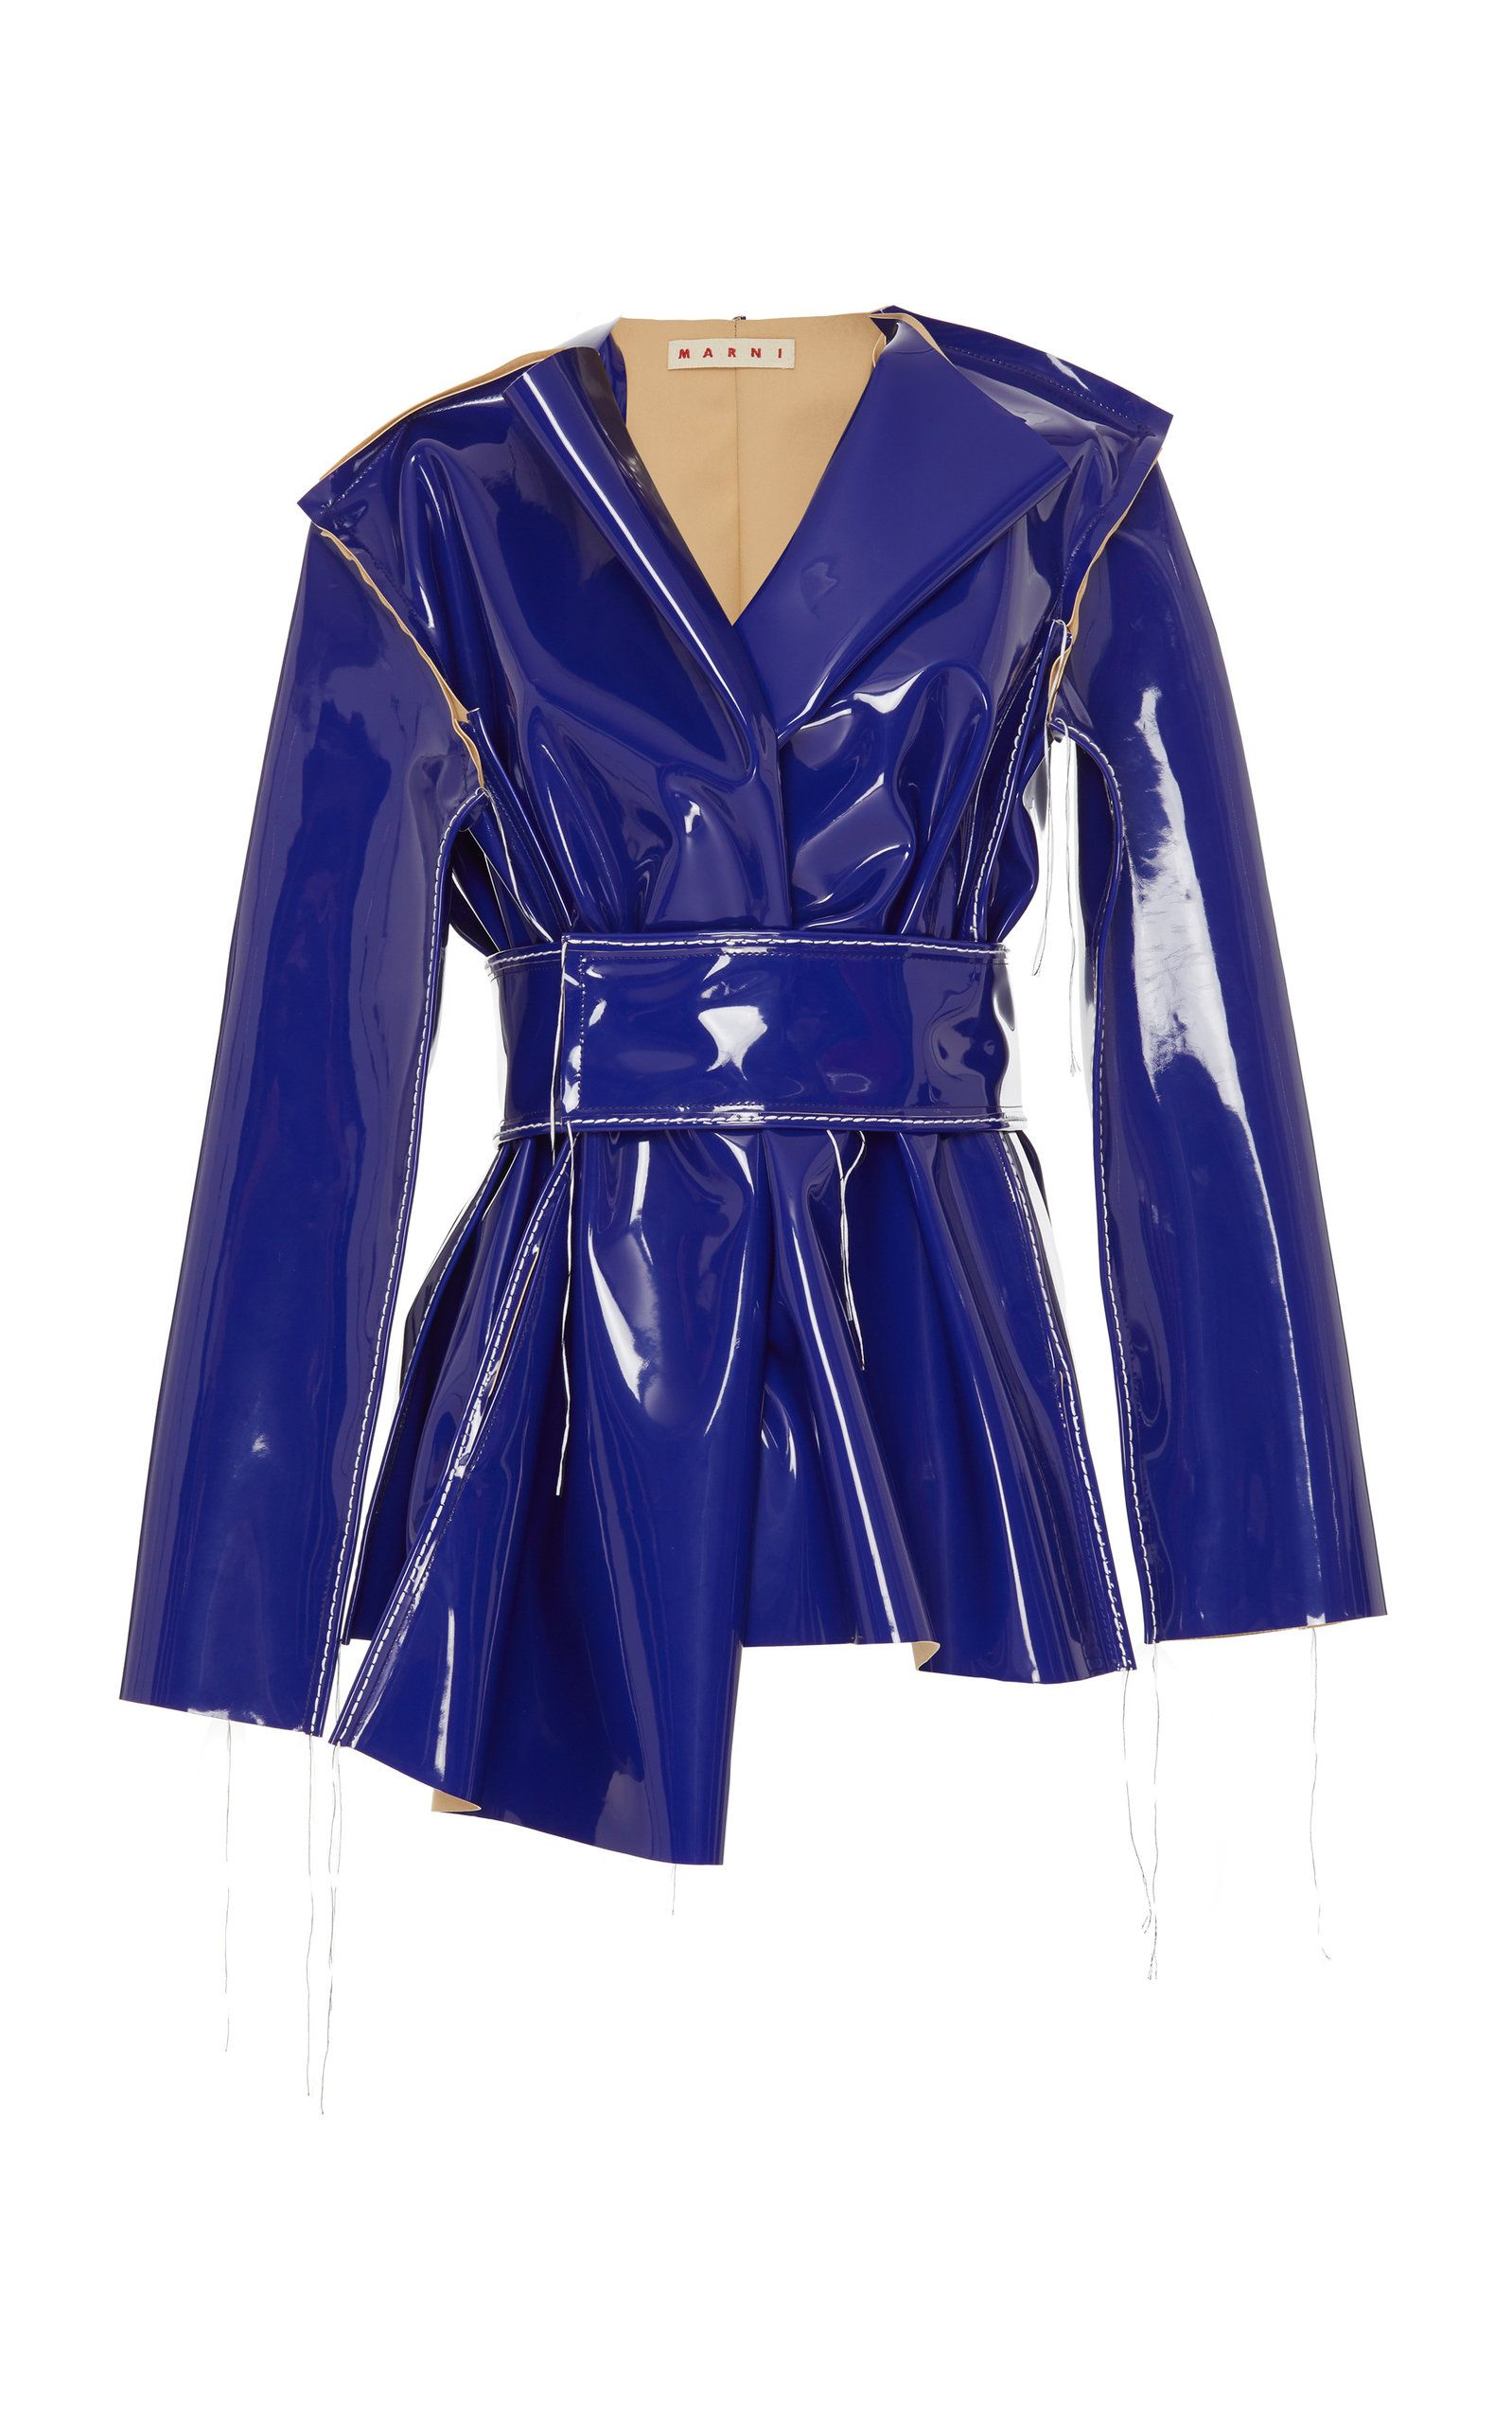 Marni Vinyl Jacket In Purple Modesens Fashion Lookbook Outfits Clothes